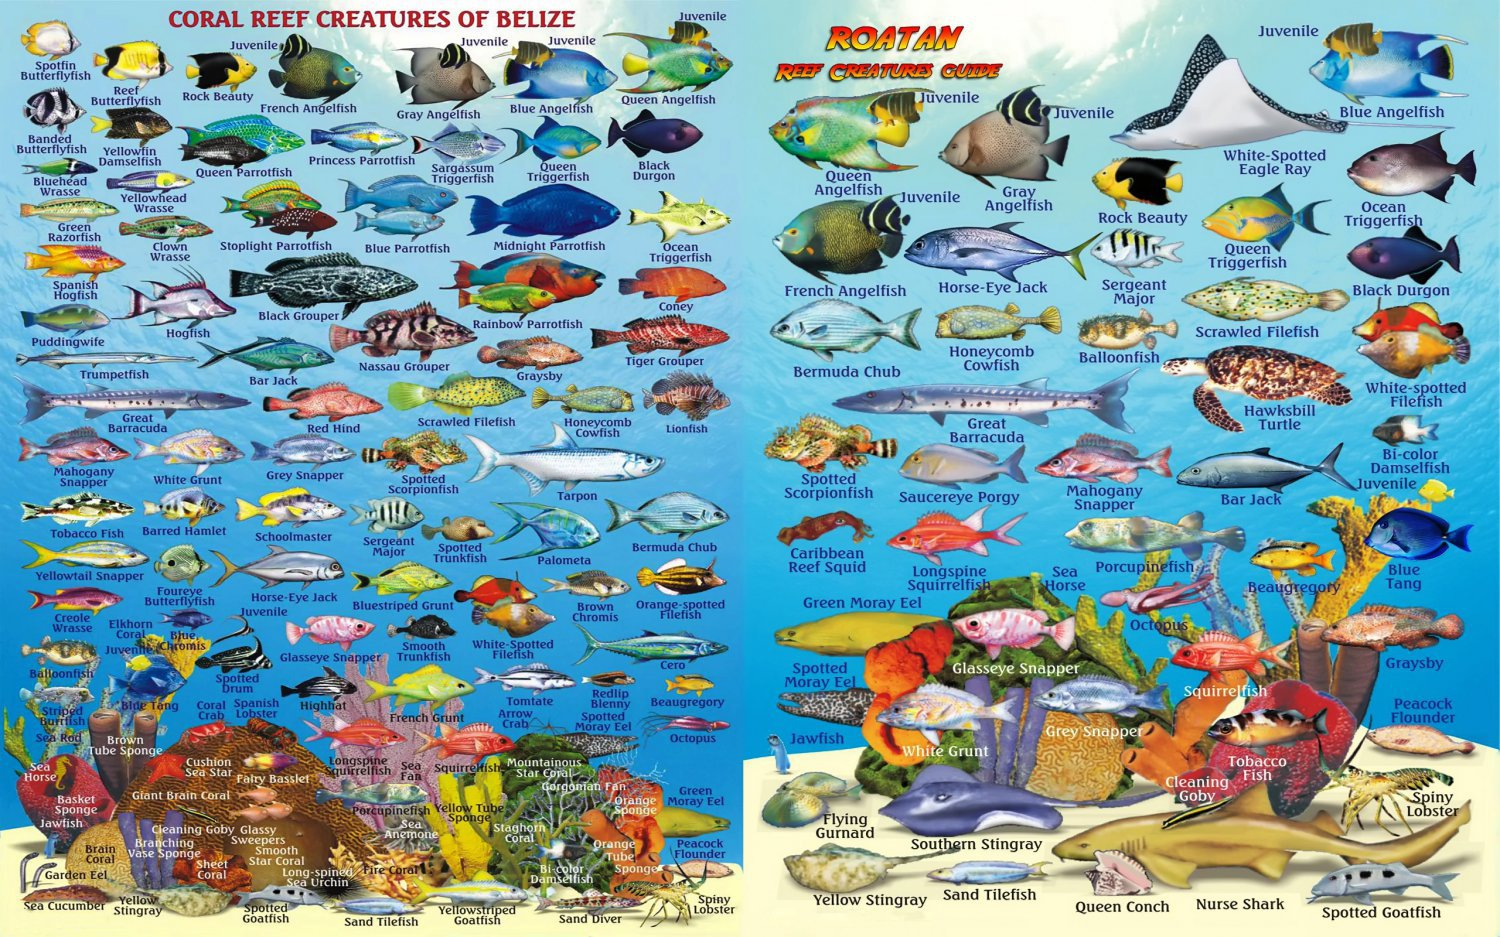 Coral Reef Creatures of Belize & Roatan Chart  18x28 inches Poster Print